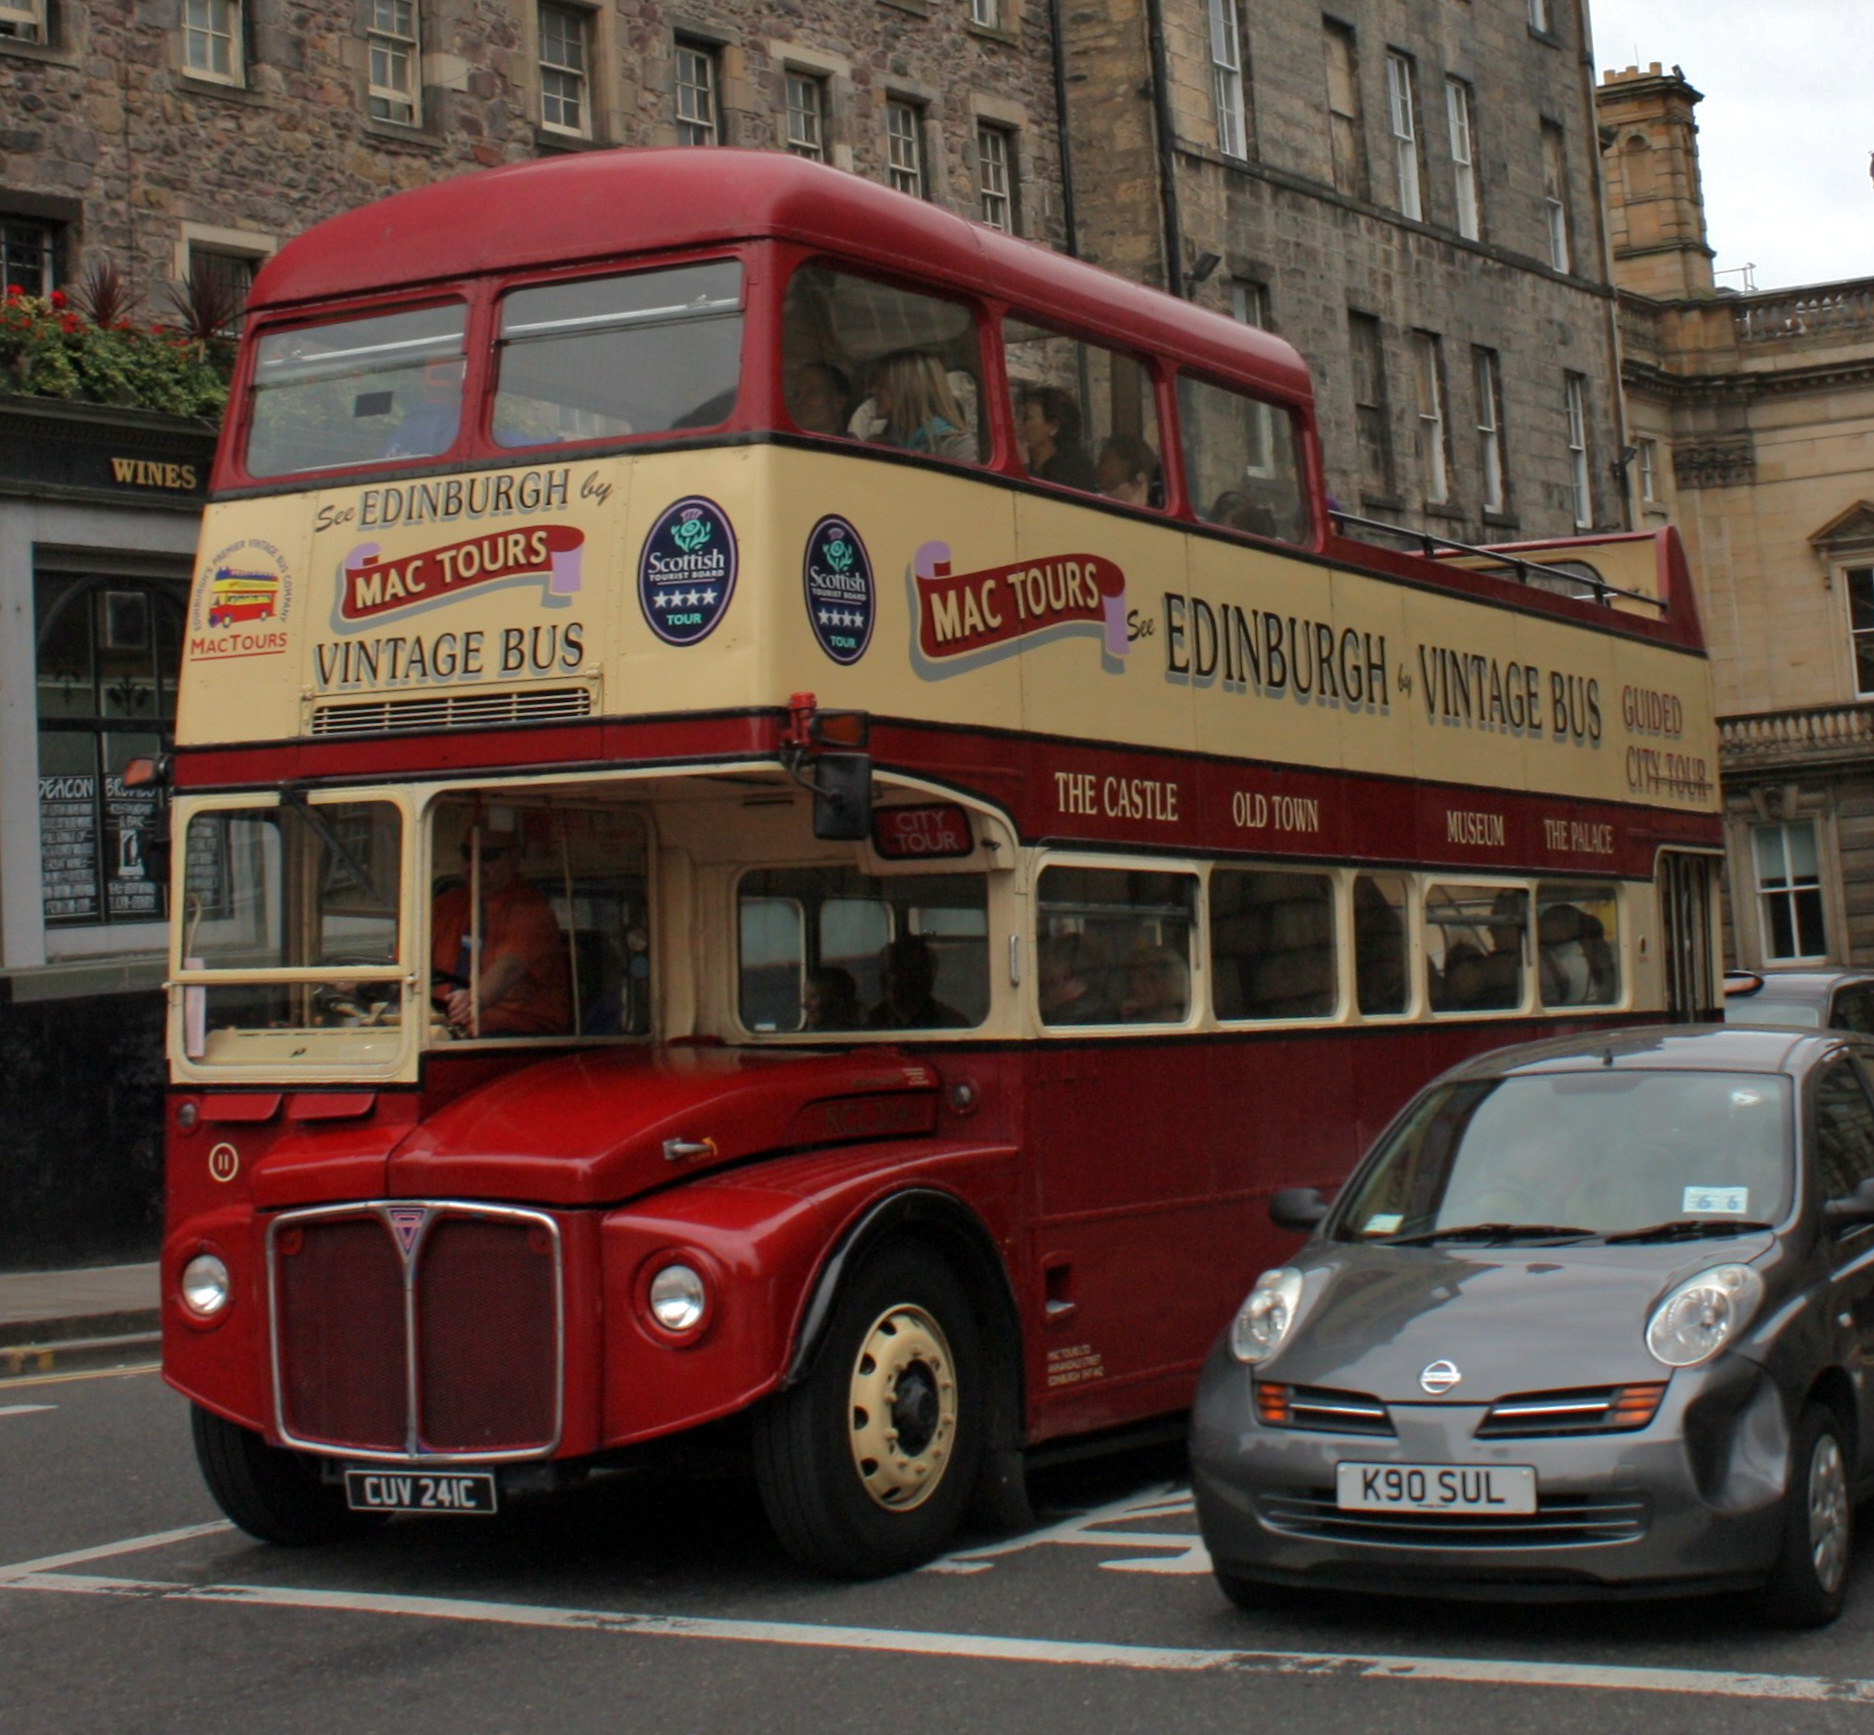 File:Lothian Buses open top tour bus 11 (RCL2241) Routemaster CUV 241C